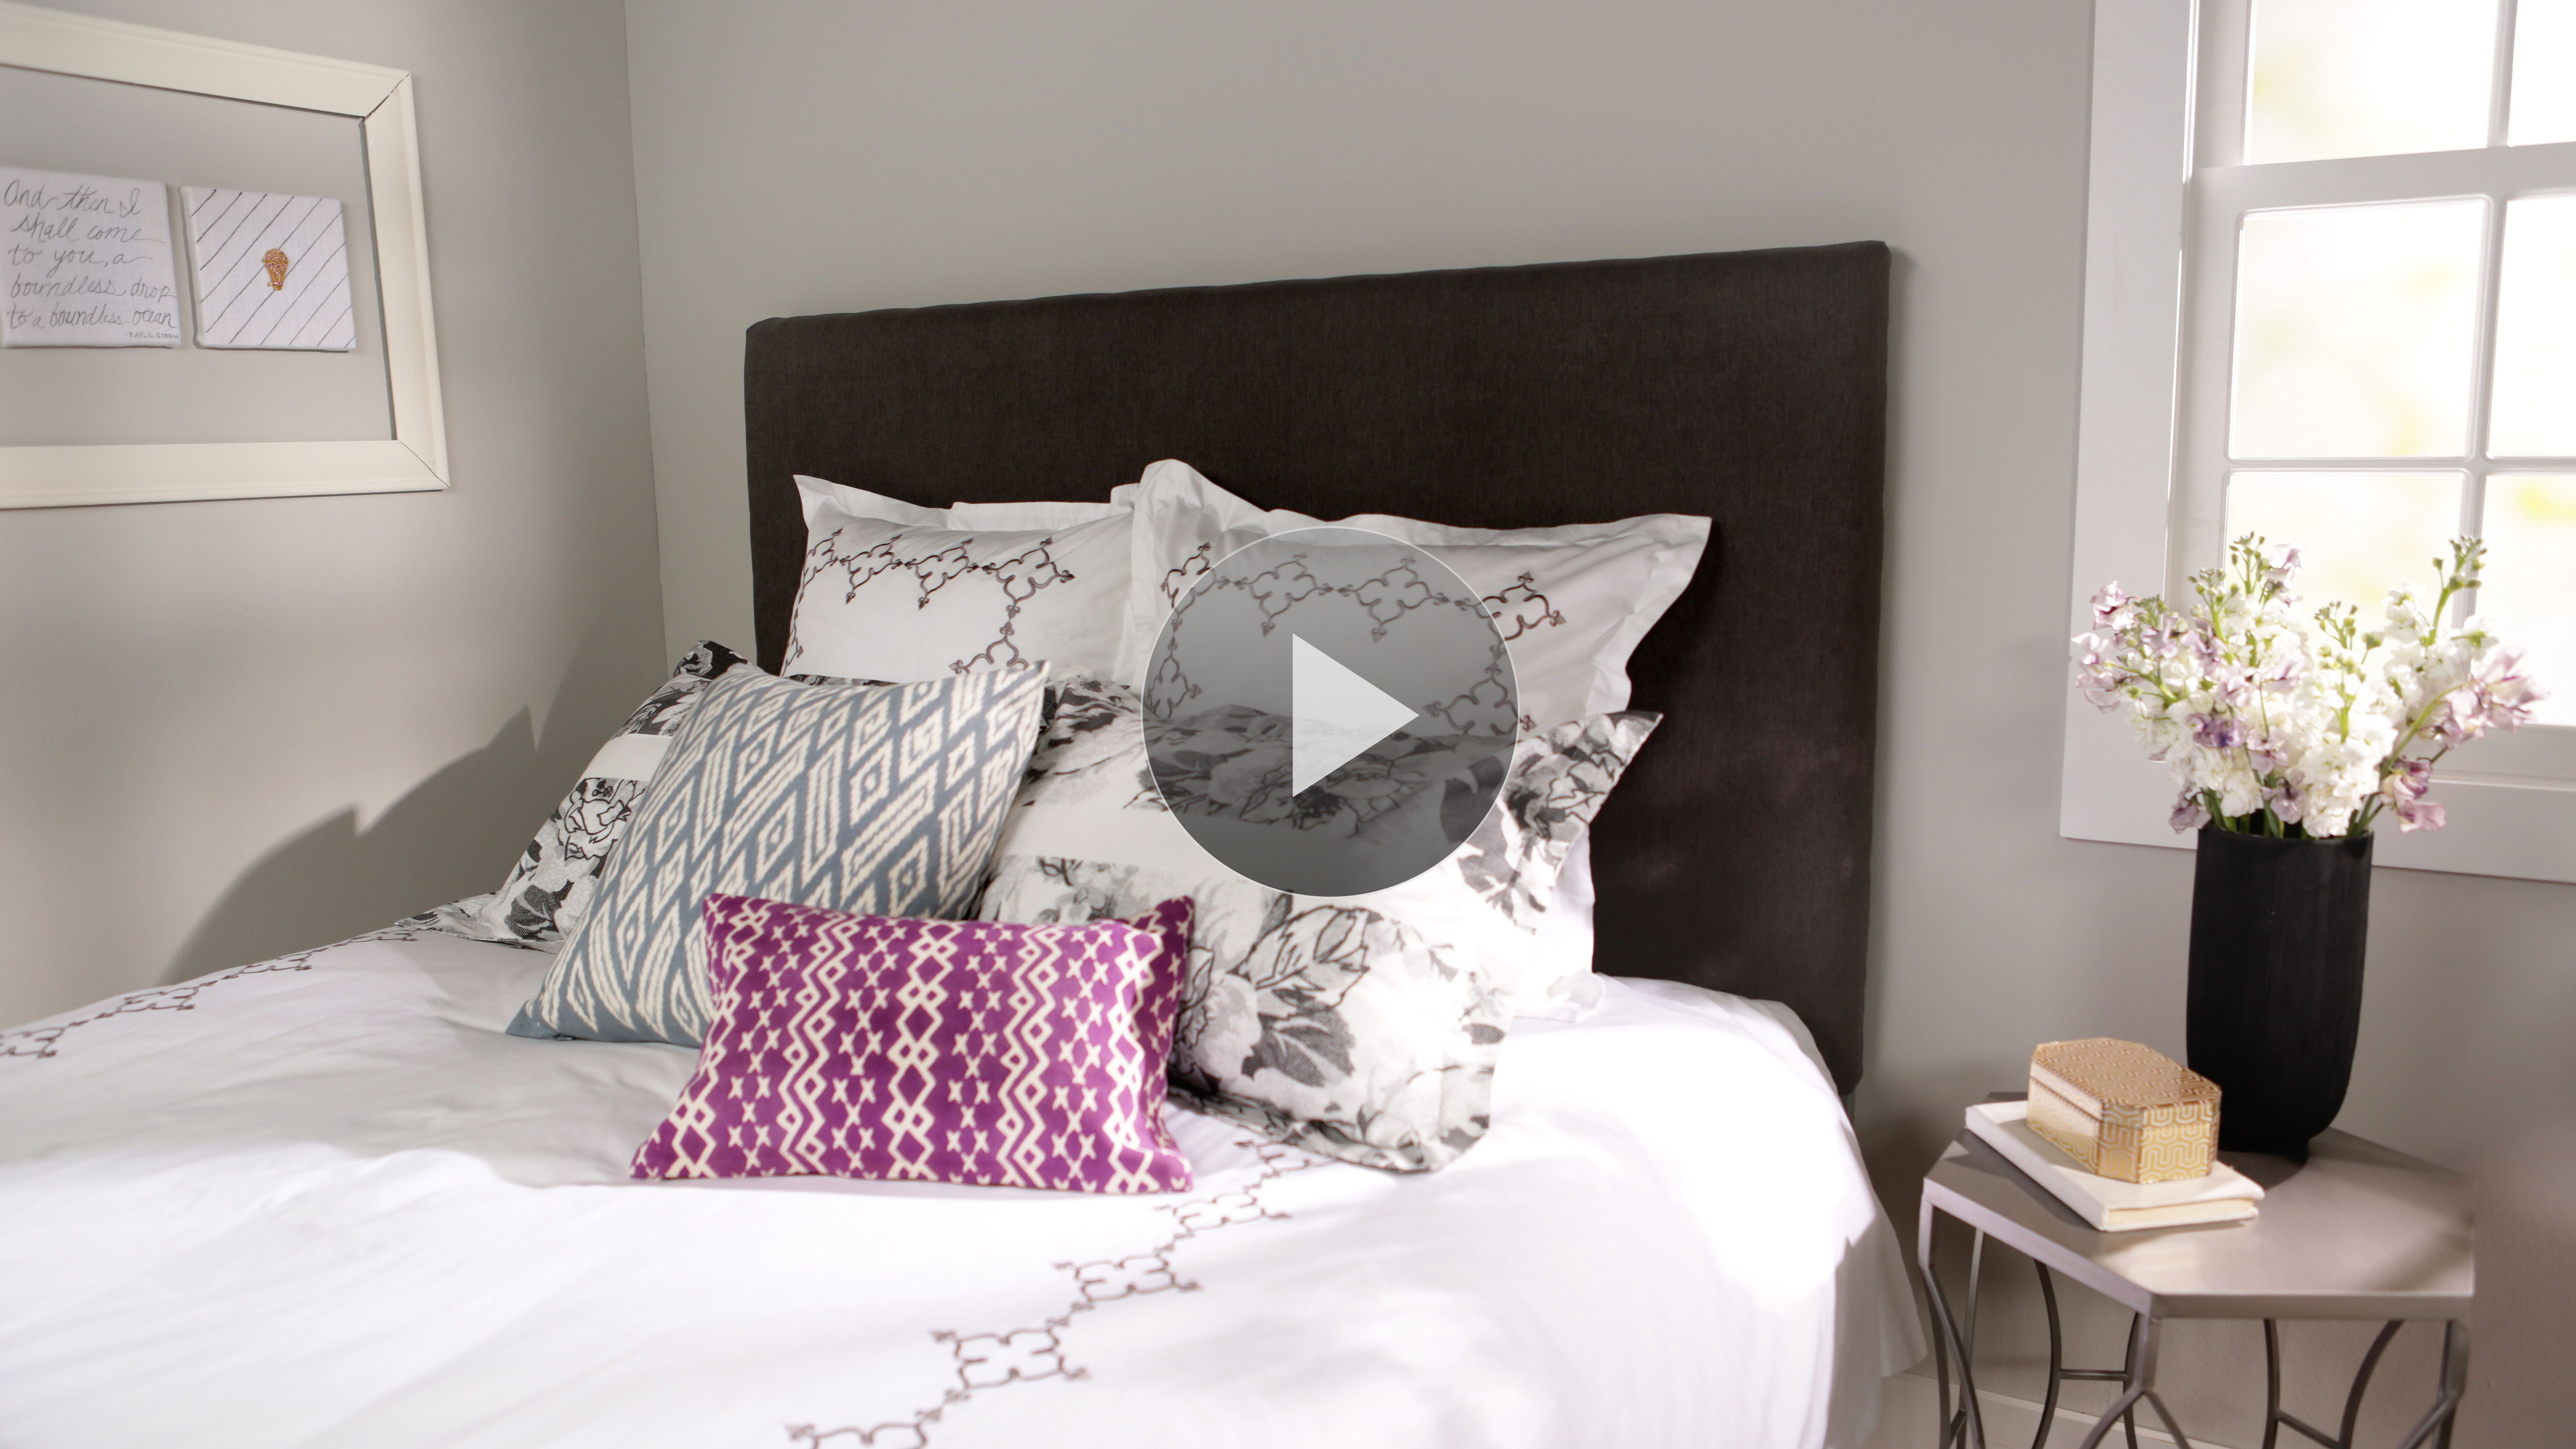 Better Homes And Gardens Bedroom Furniture: A Tutorial Video That Shows How To Make A Padded, Fabric